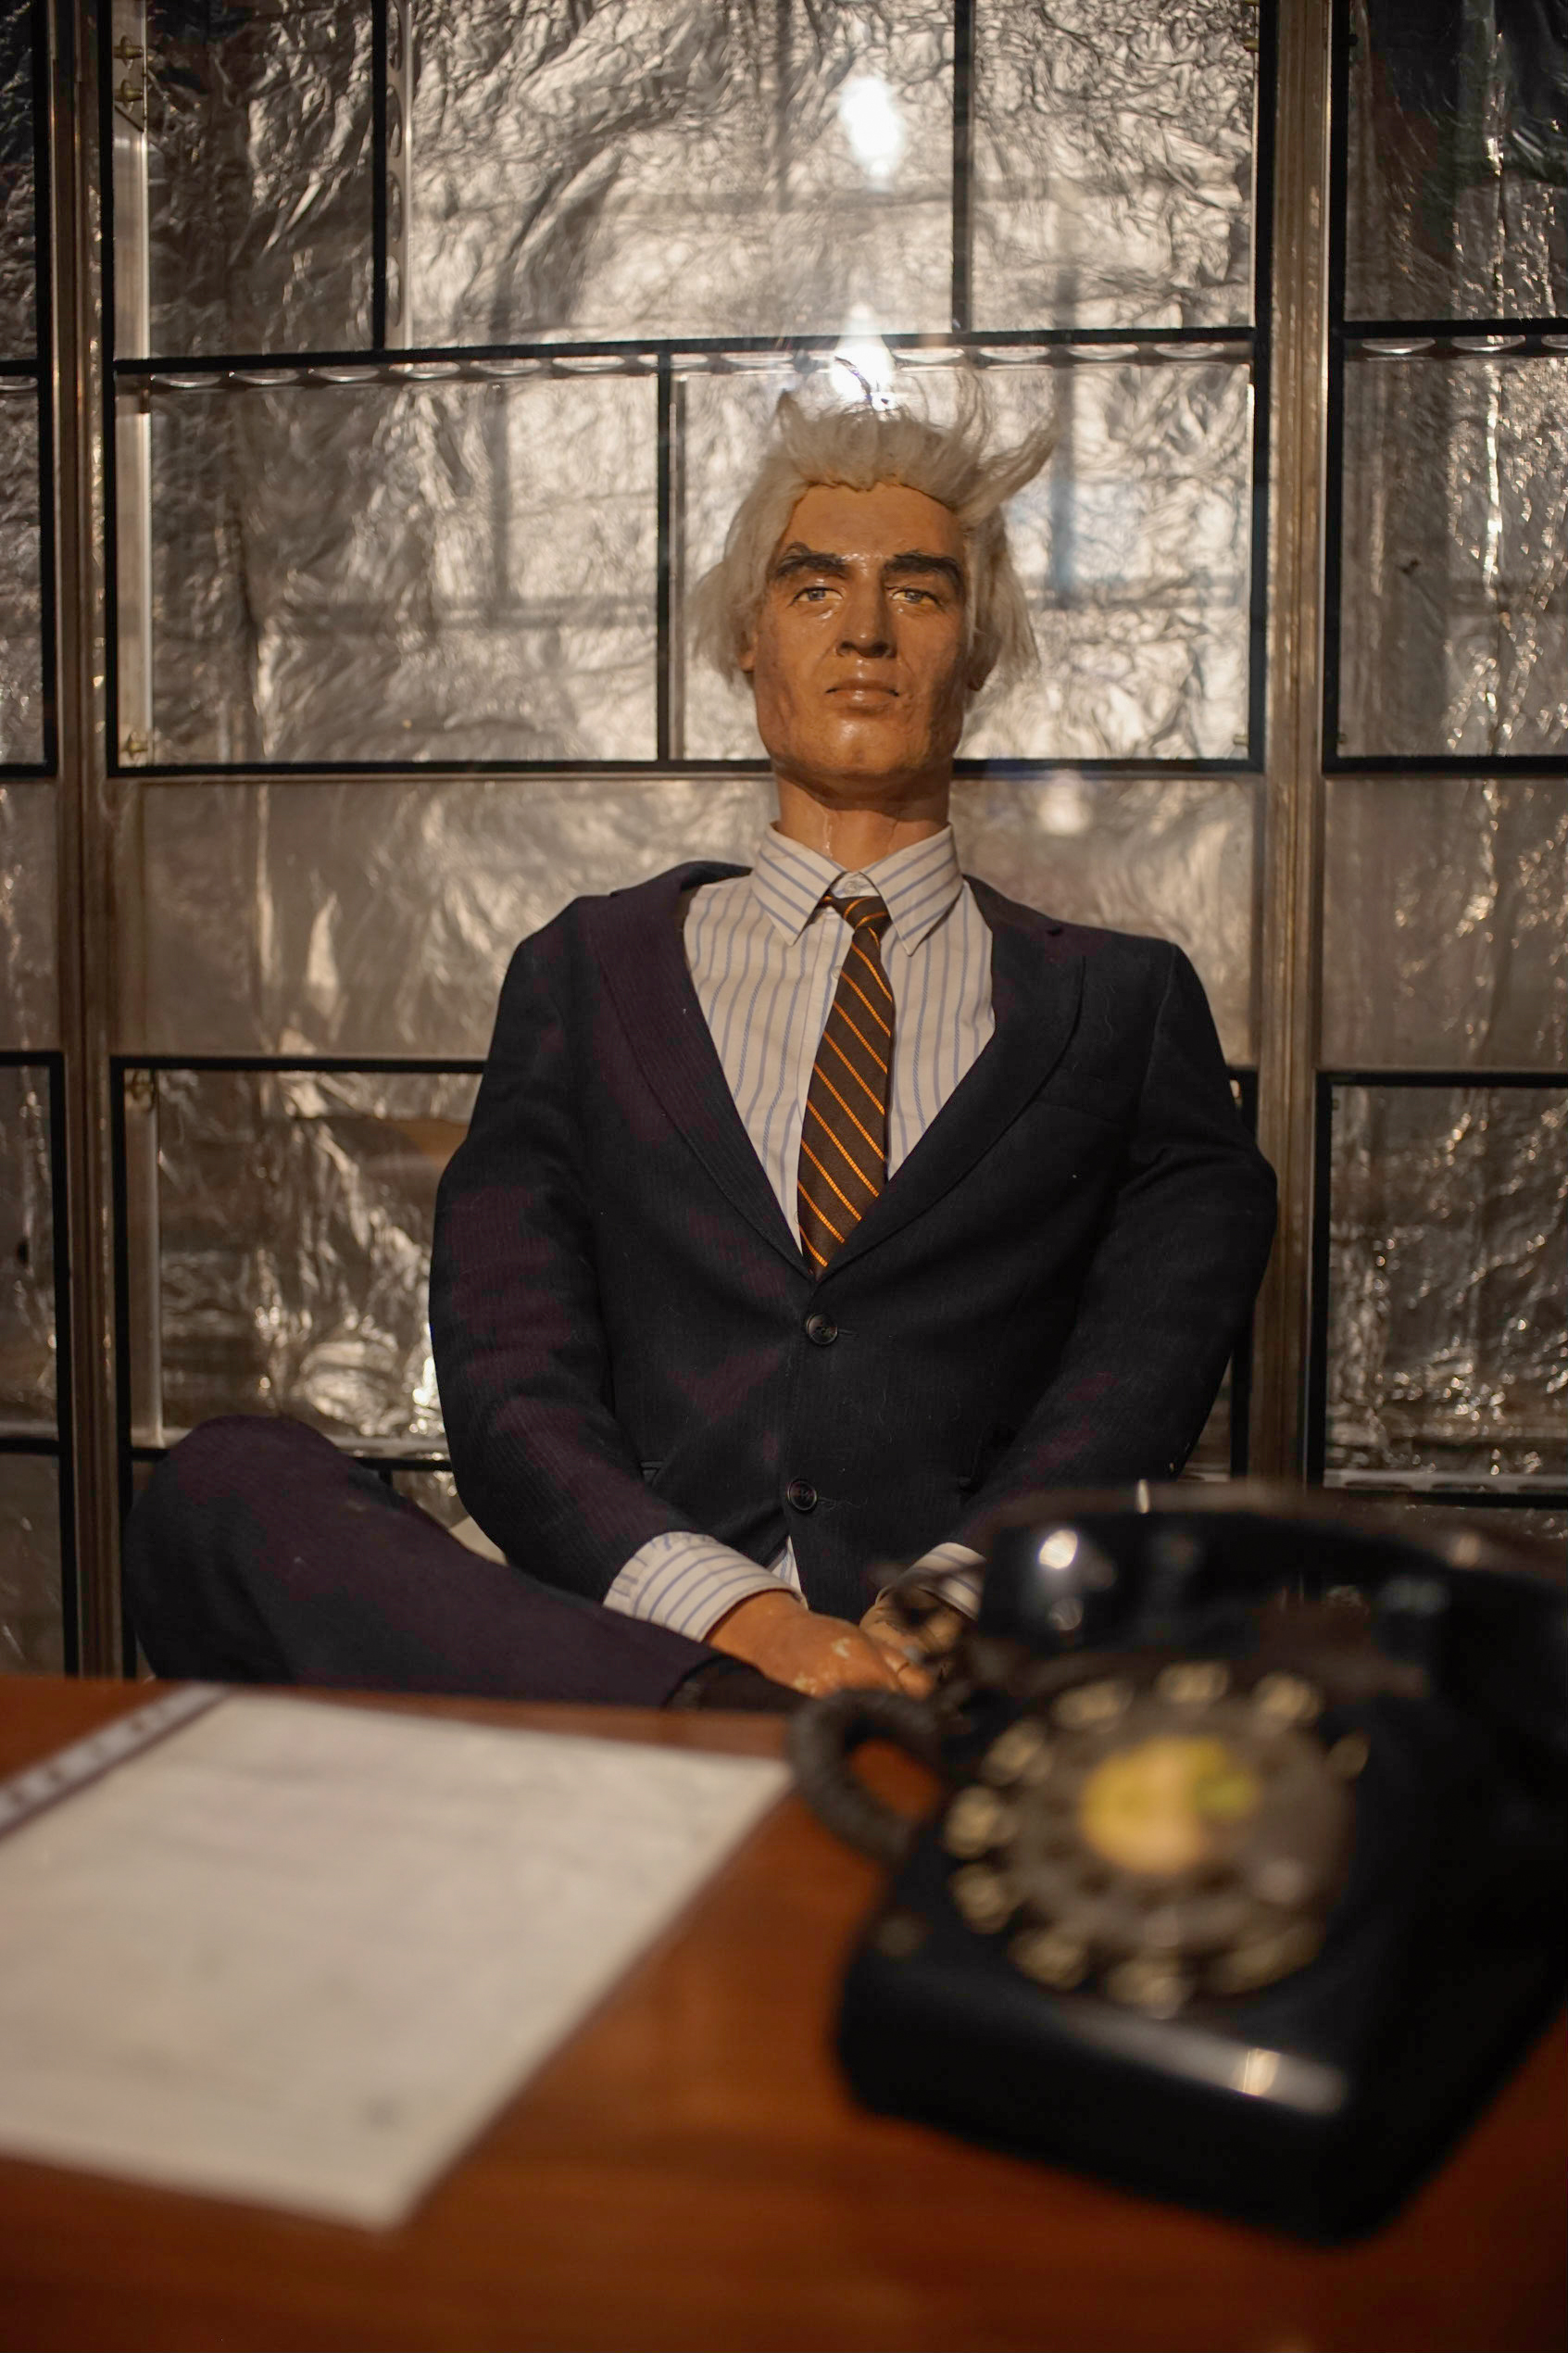 This mannequin is supposed to represent Ambassador William Sullivan, who headed the U.S. diplomatic mission in Iran during the late 1970s. Sullivan wasn't among the captured hostages; he was back in the United States the day the embassy was seized.